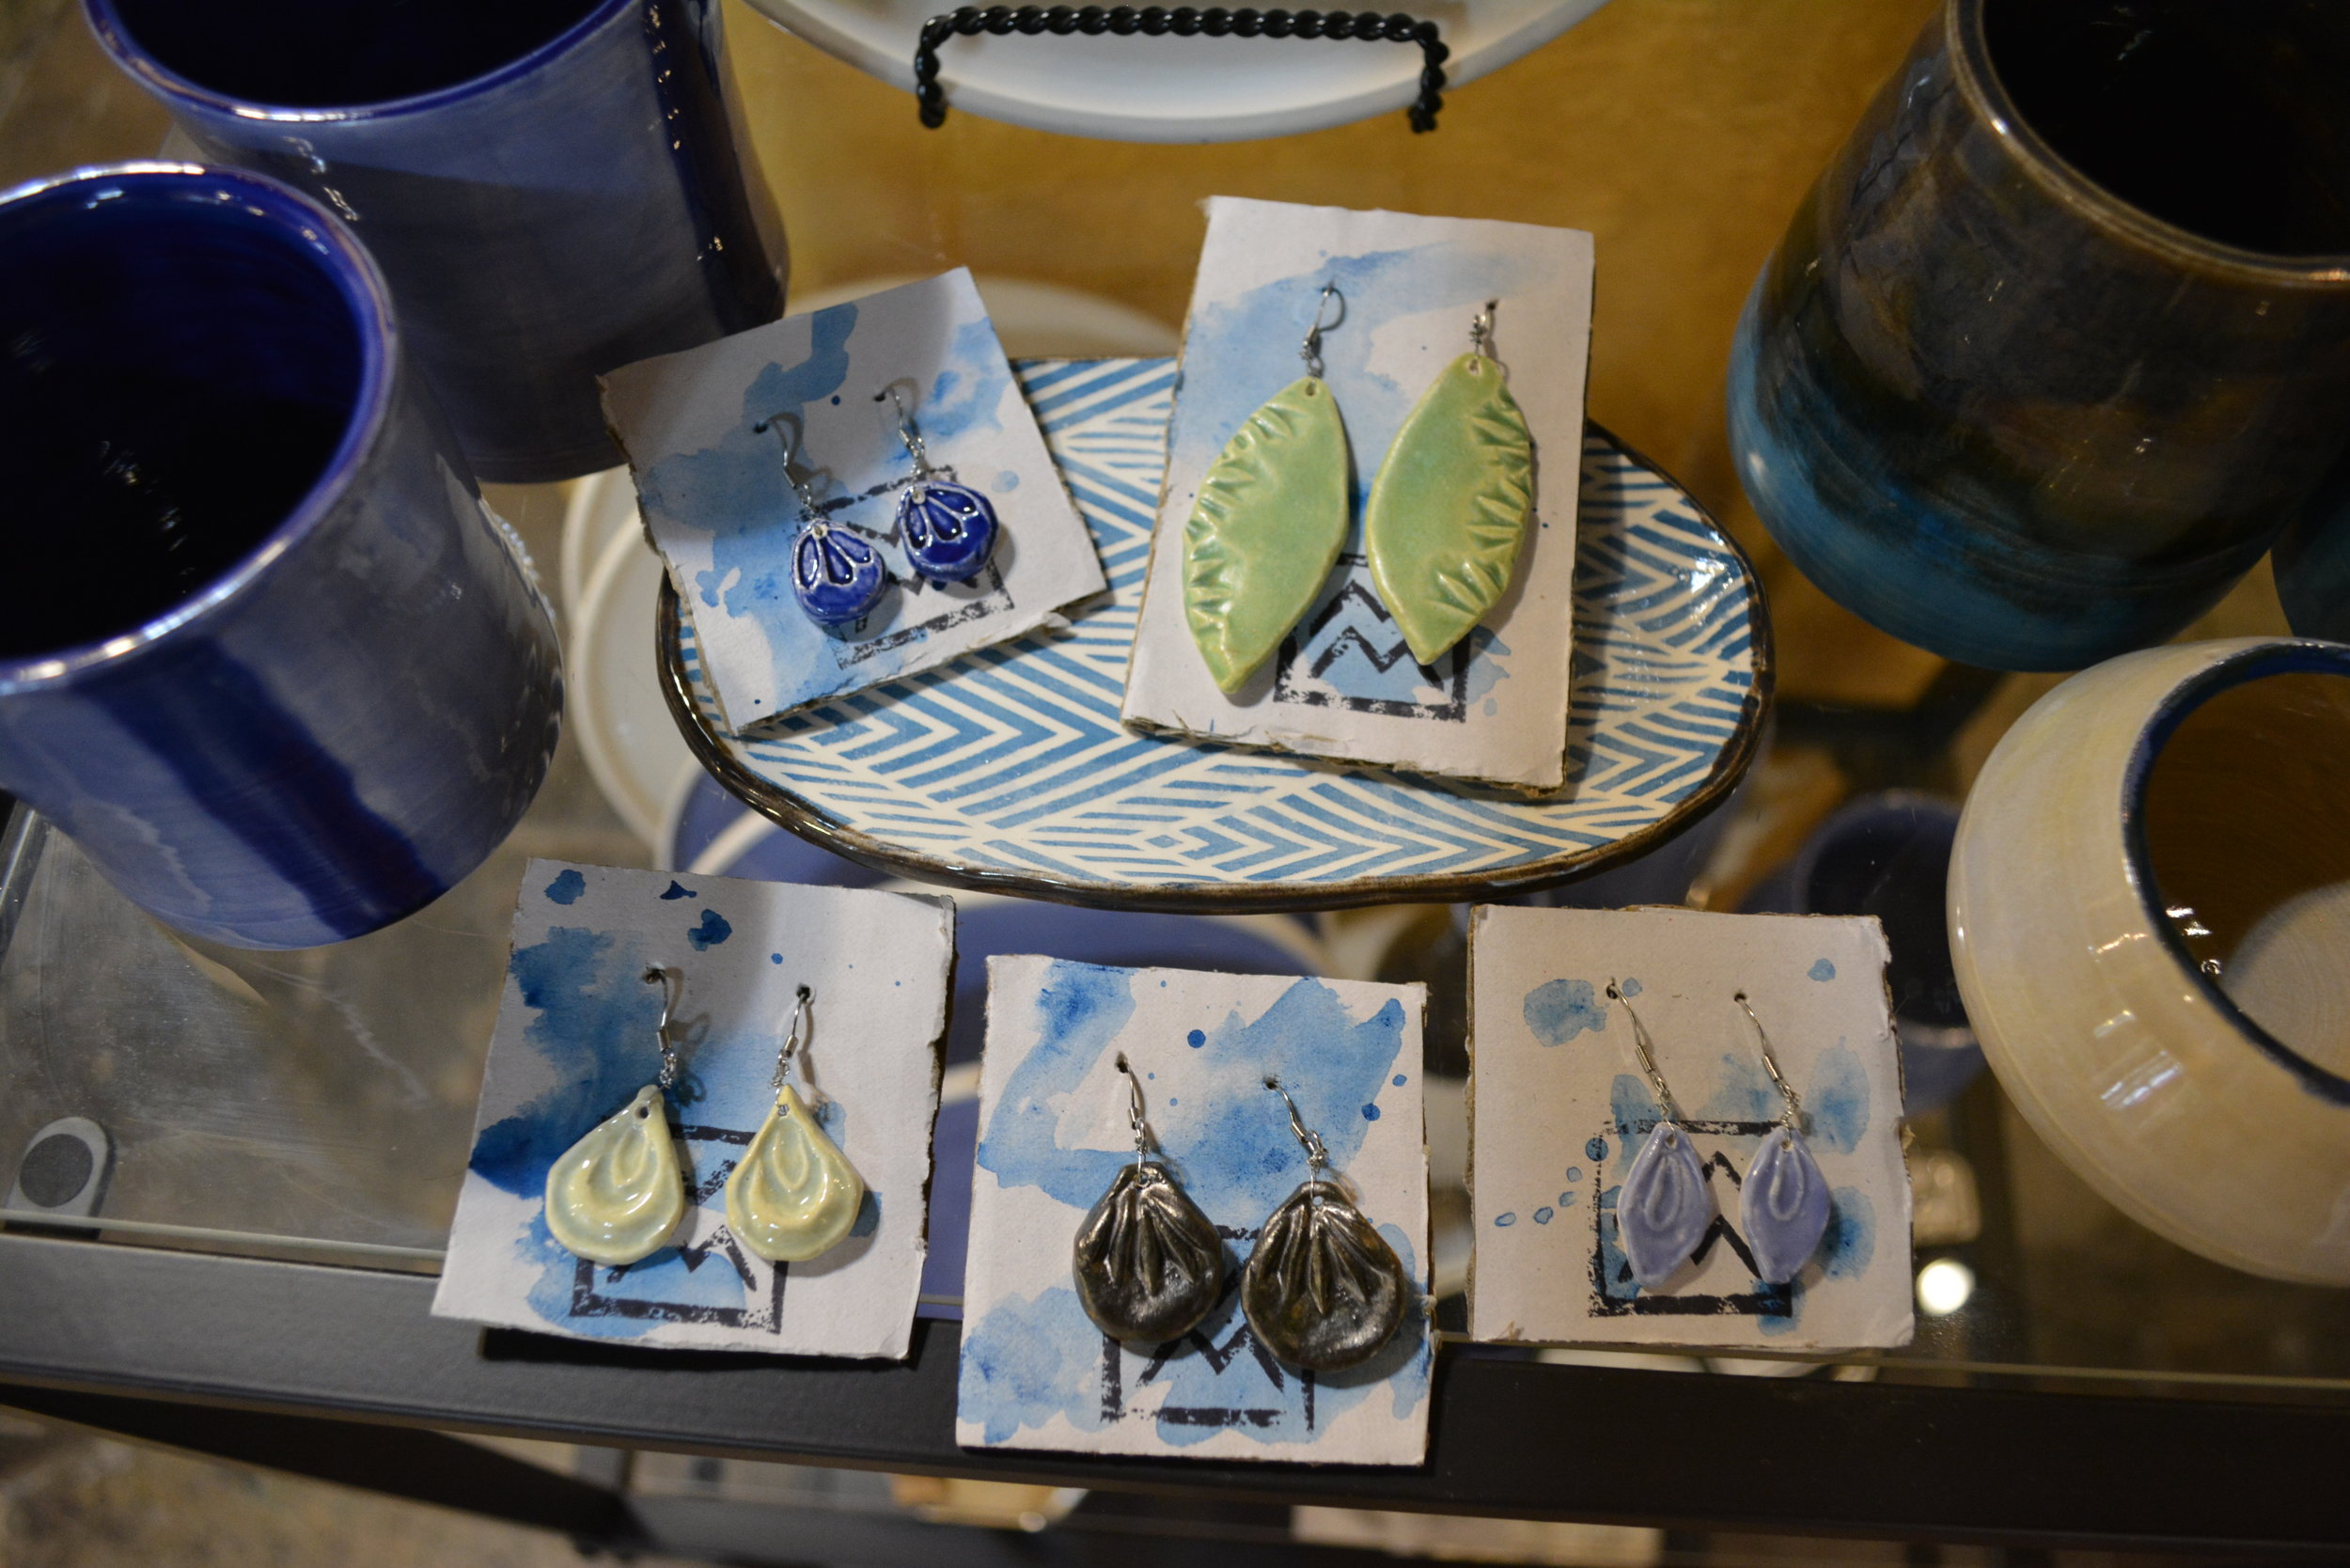 Morgan Mattson - Hand-built ceramic earrings with calming plant accents.